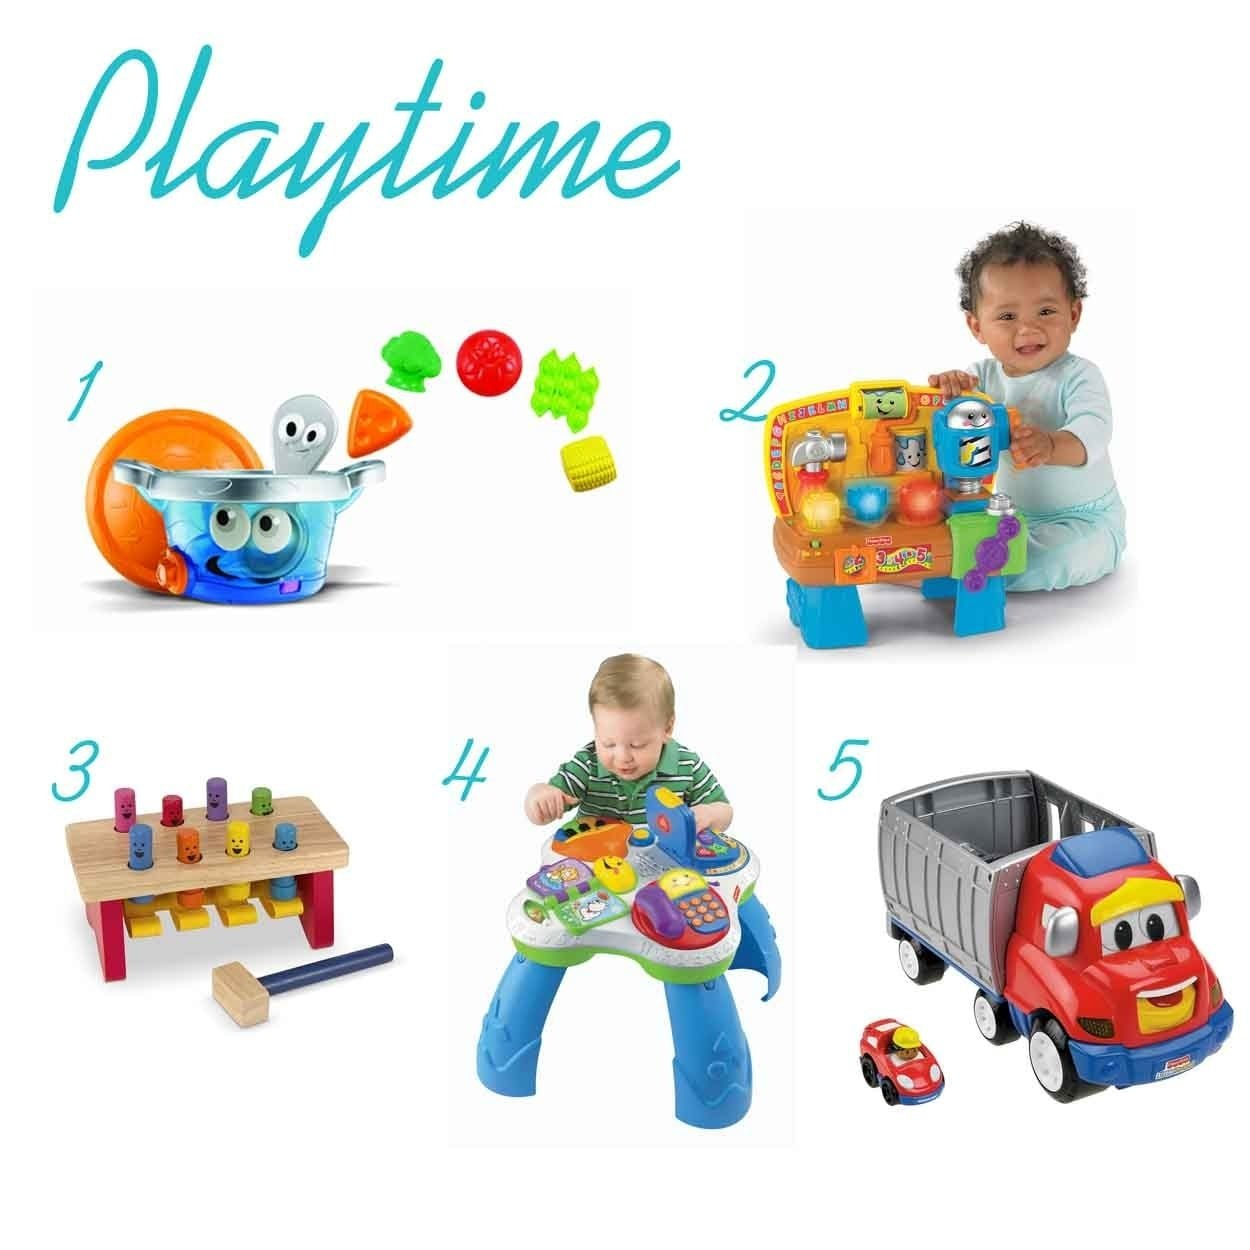 10 Unique Gift Ideas For One Year Old Boy the ultimate gift list for a 1 year old boy e280a2 the pinning mama 5 2020